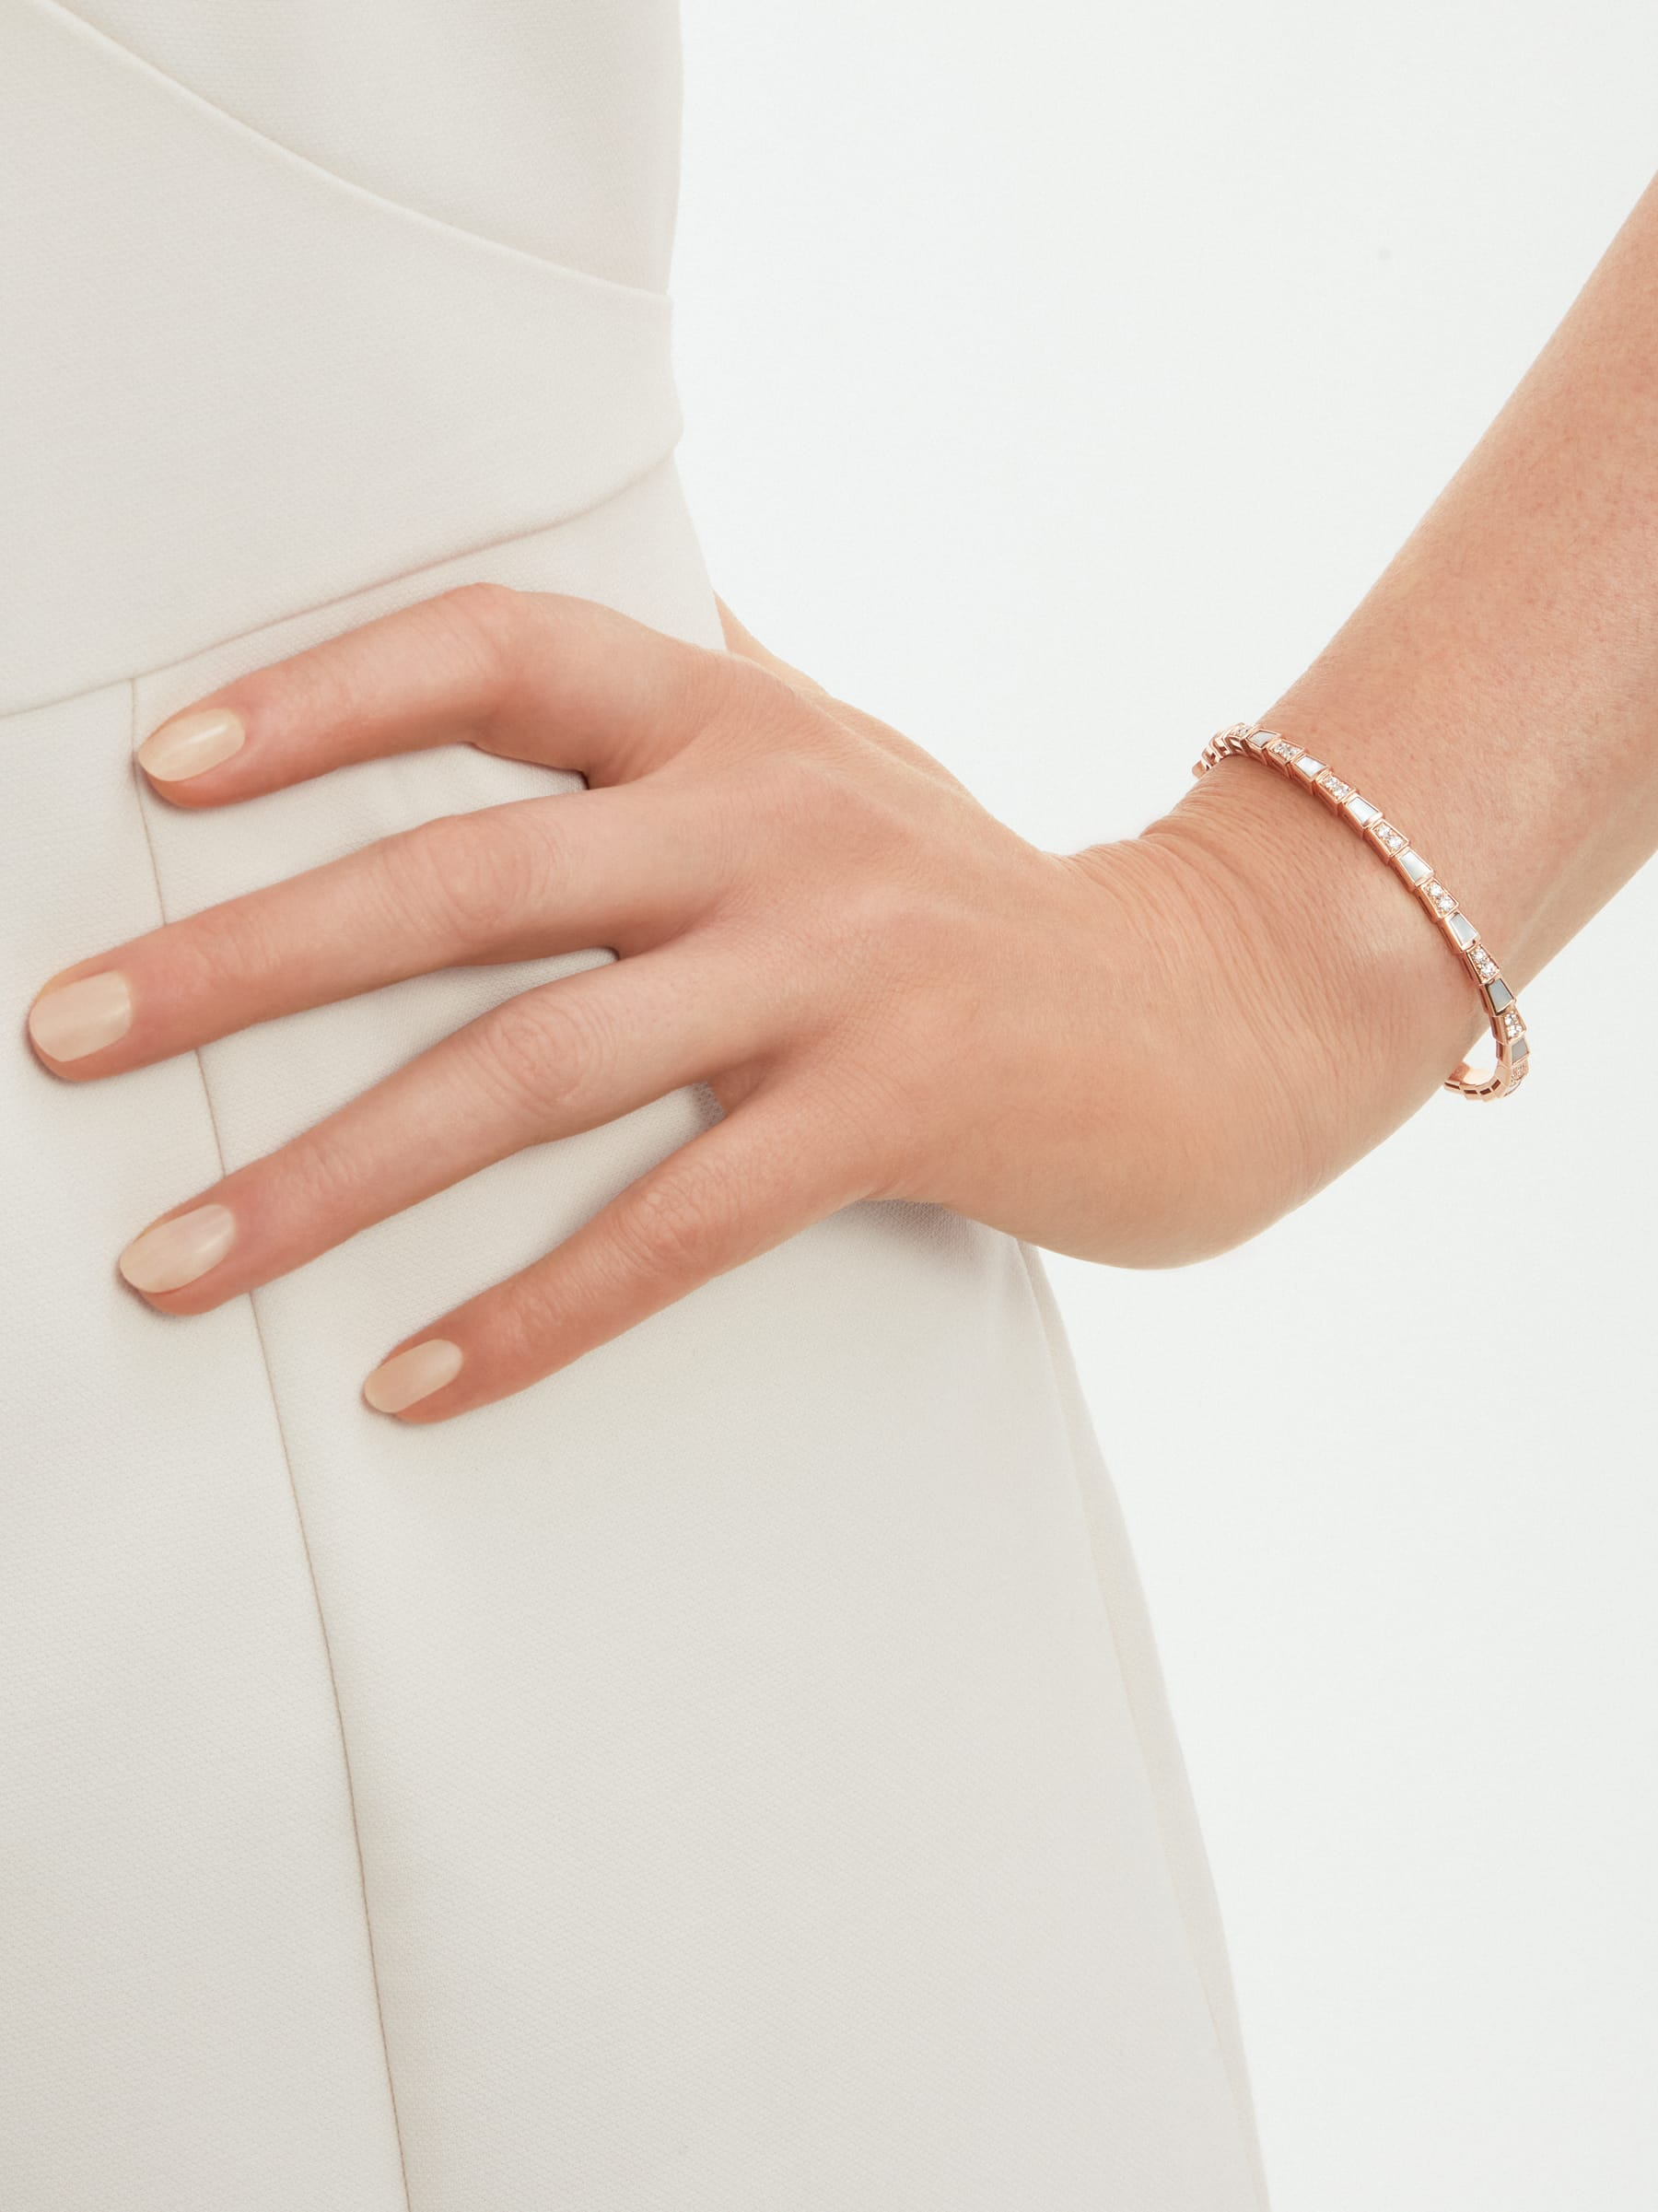 Serpenti Viper 18 kt rose gold bracelet set with mother-of-pearl elements and pavé diamonds BR858356 image 3